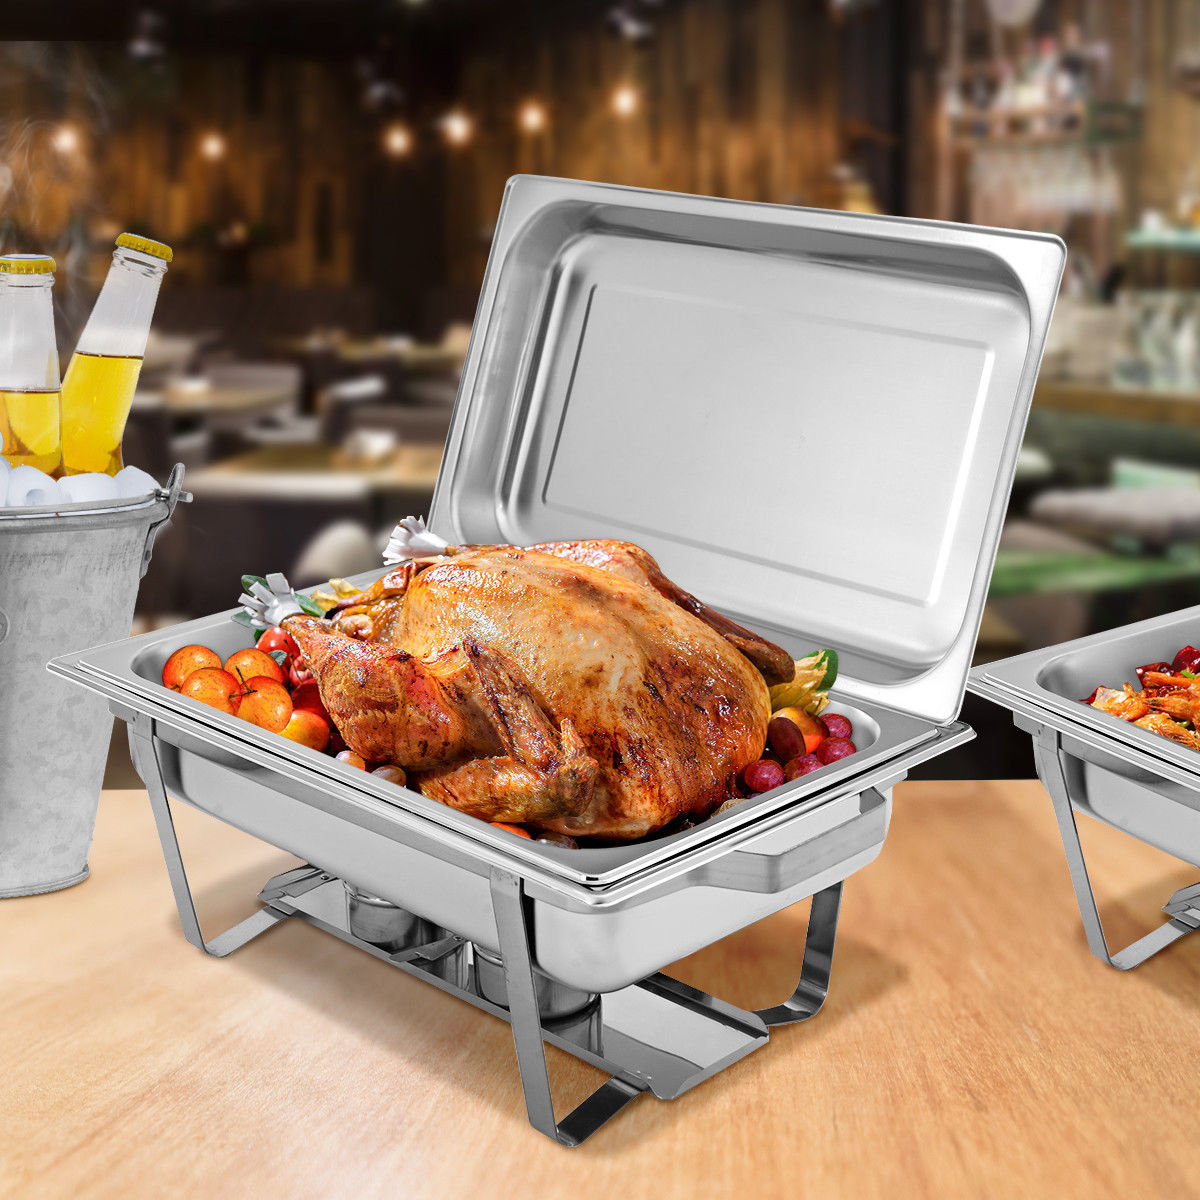 2 Packs Chafing Dish 9 Quart Stainless Steel Rectangular Chafer Full Size Buffet - image 2 of 10